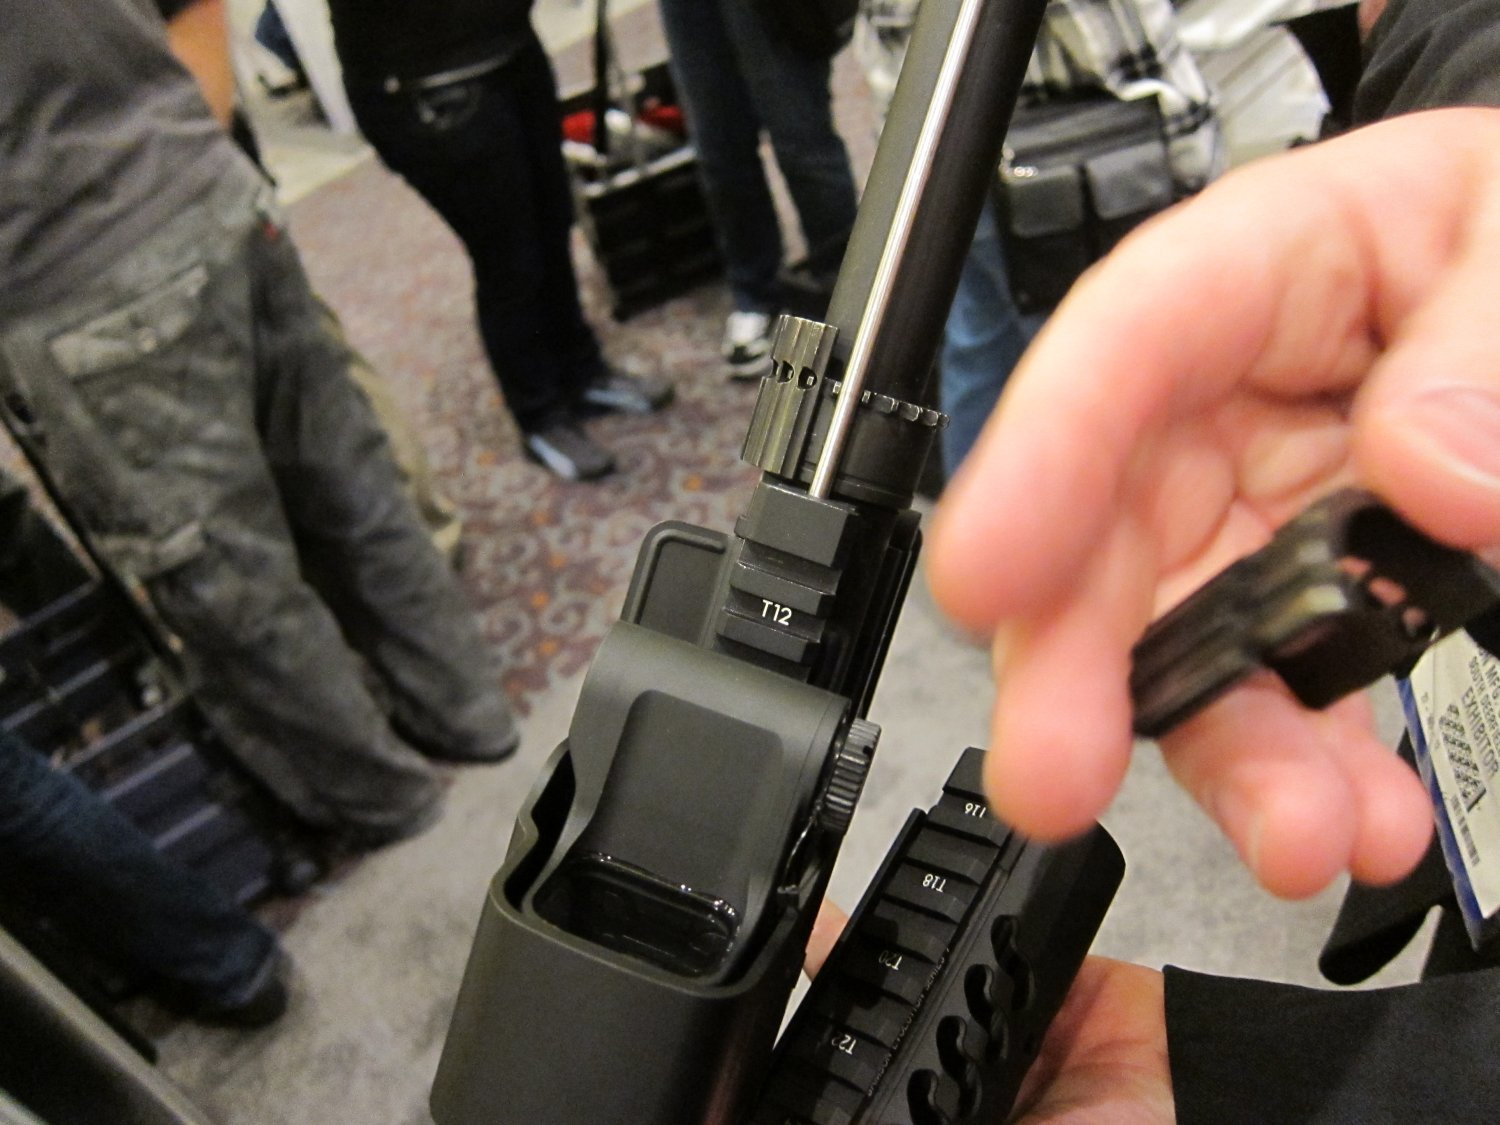 "Samson Evolution Series Rail System SHOT SHOW 2011 4 <!  :en  >Samson Evolution Series Rail System Outfitted Adams Arms 7.5"" PDW Piston AR SBR for Dynamic Close Quarters Battle (CQB) and Tactical Training: DARC Ready!<!  :  >"